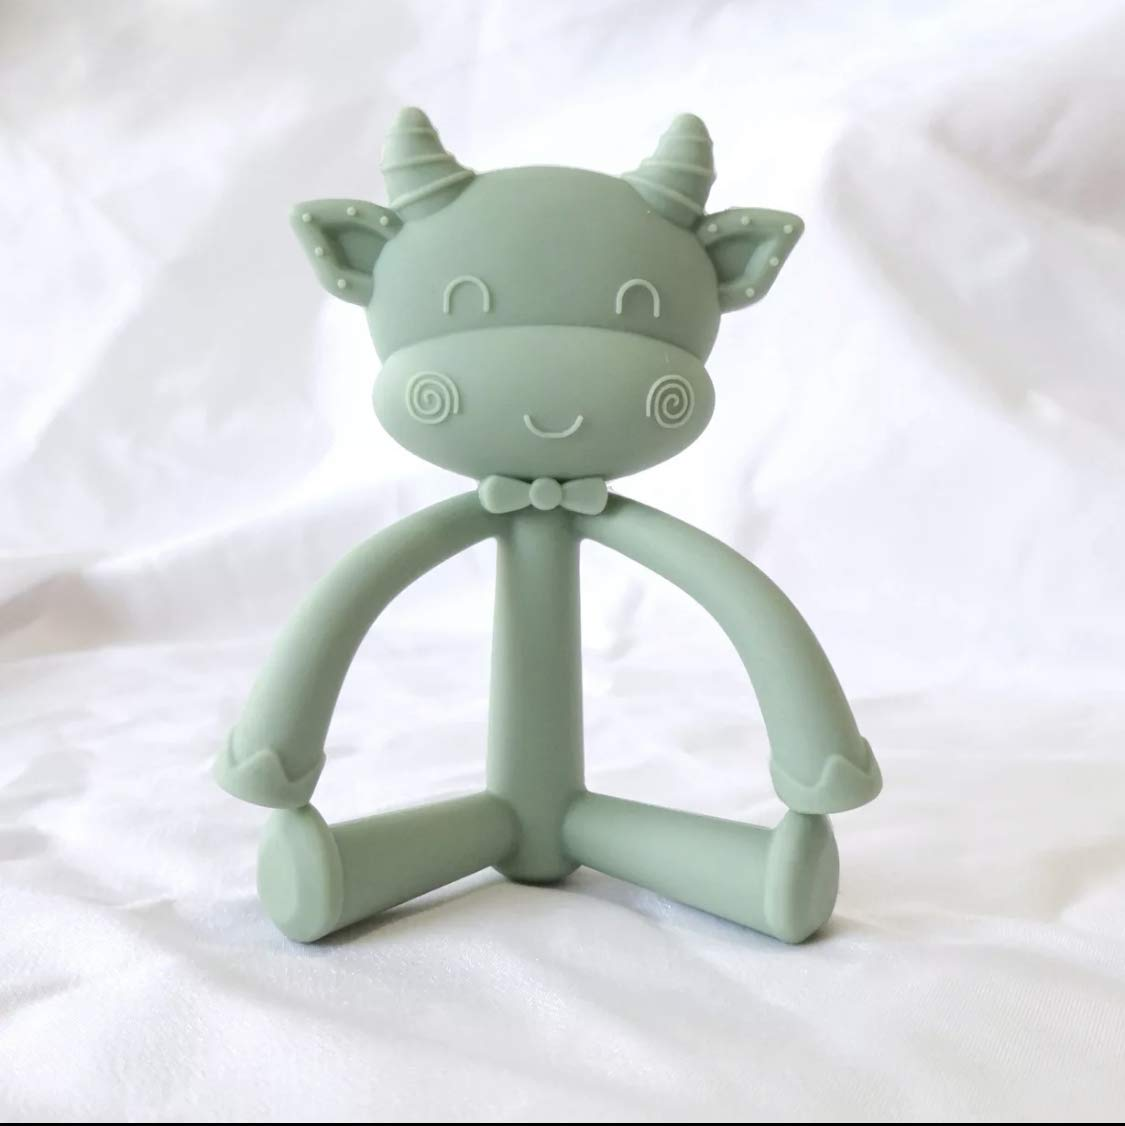 Easy to Hold Silicone Teether Cow Shaped Rose Dawn